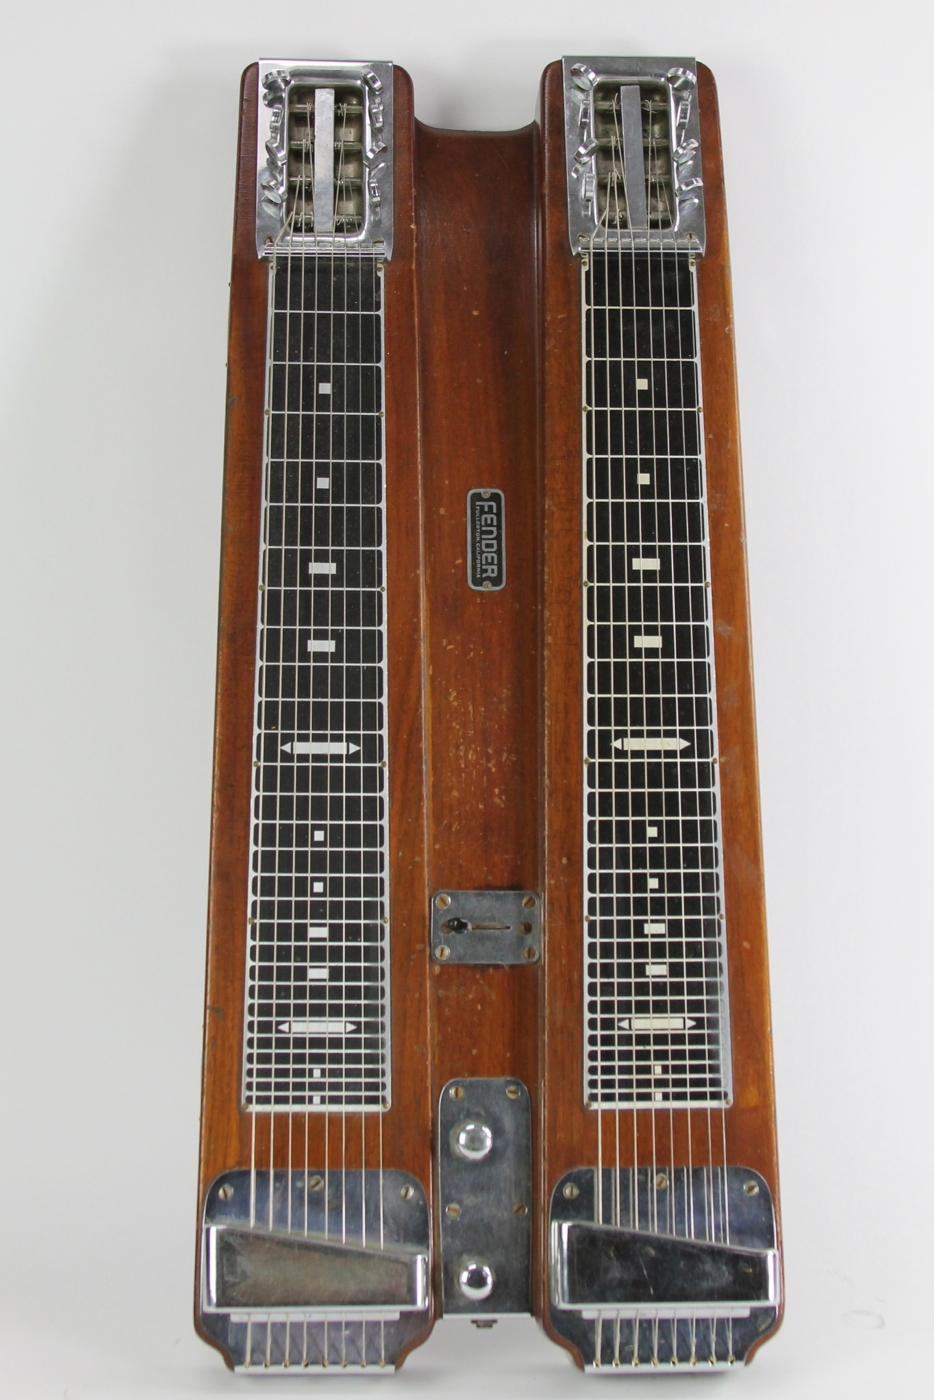 1951 Fender Dual 8 Professional Double Neck Lap Steel